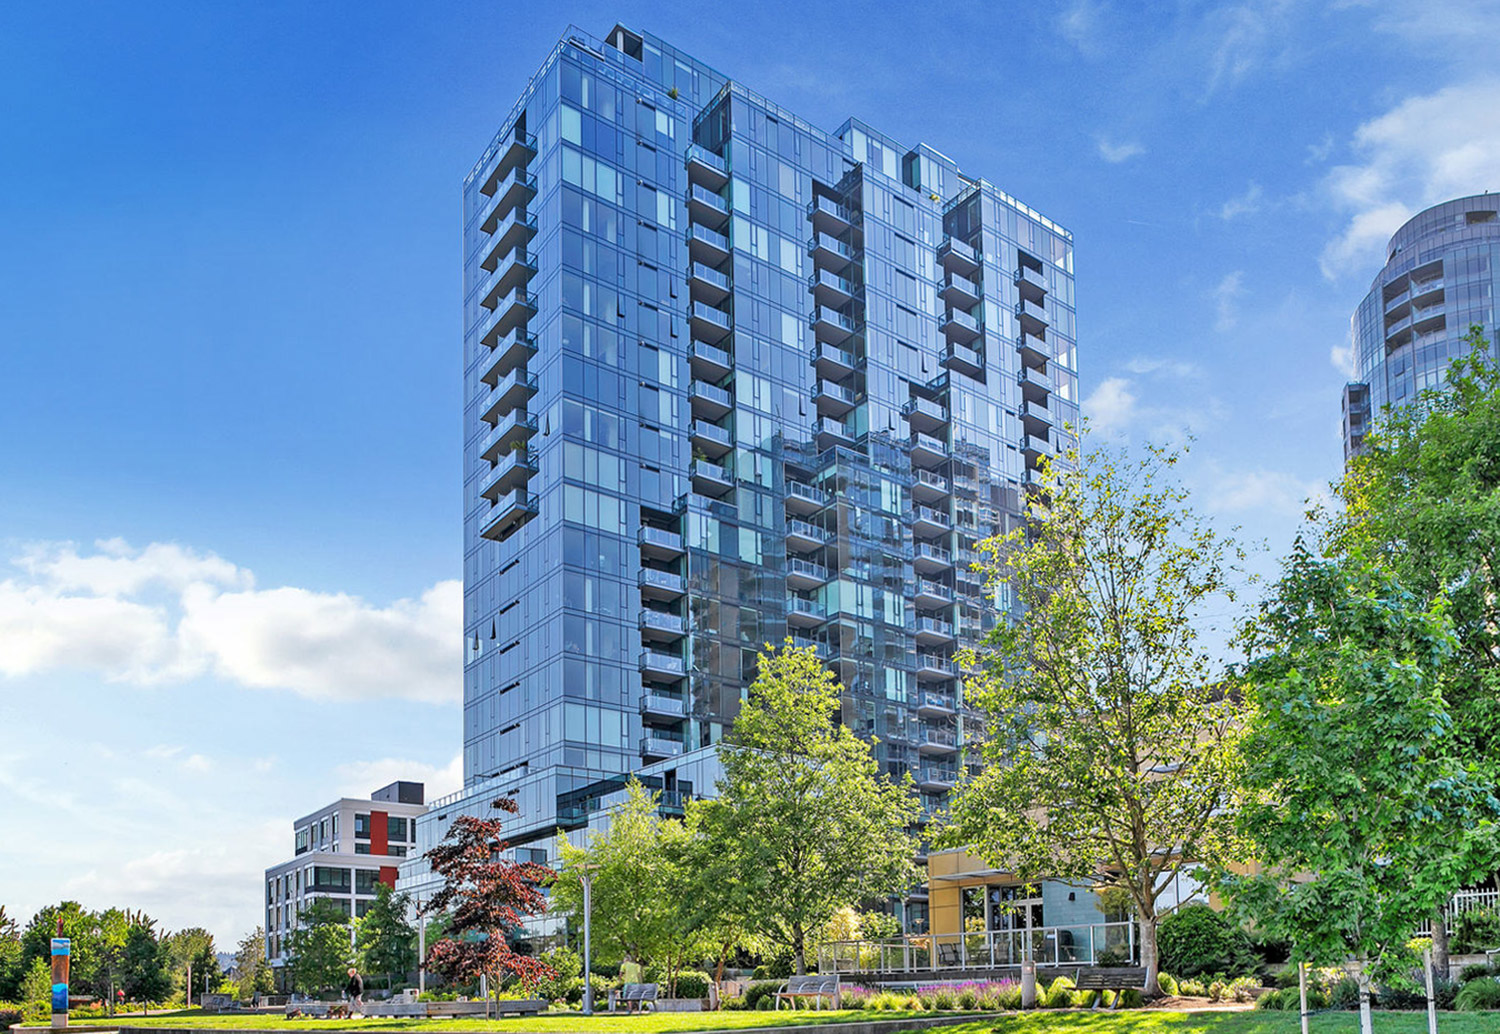 Atwater Place Condominiums: its gleaming, sculptural facade has become a iconic Portland landmark.